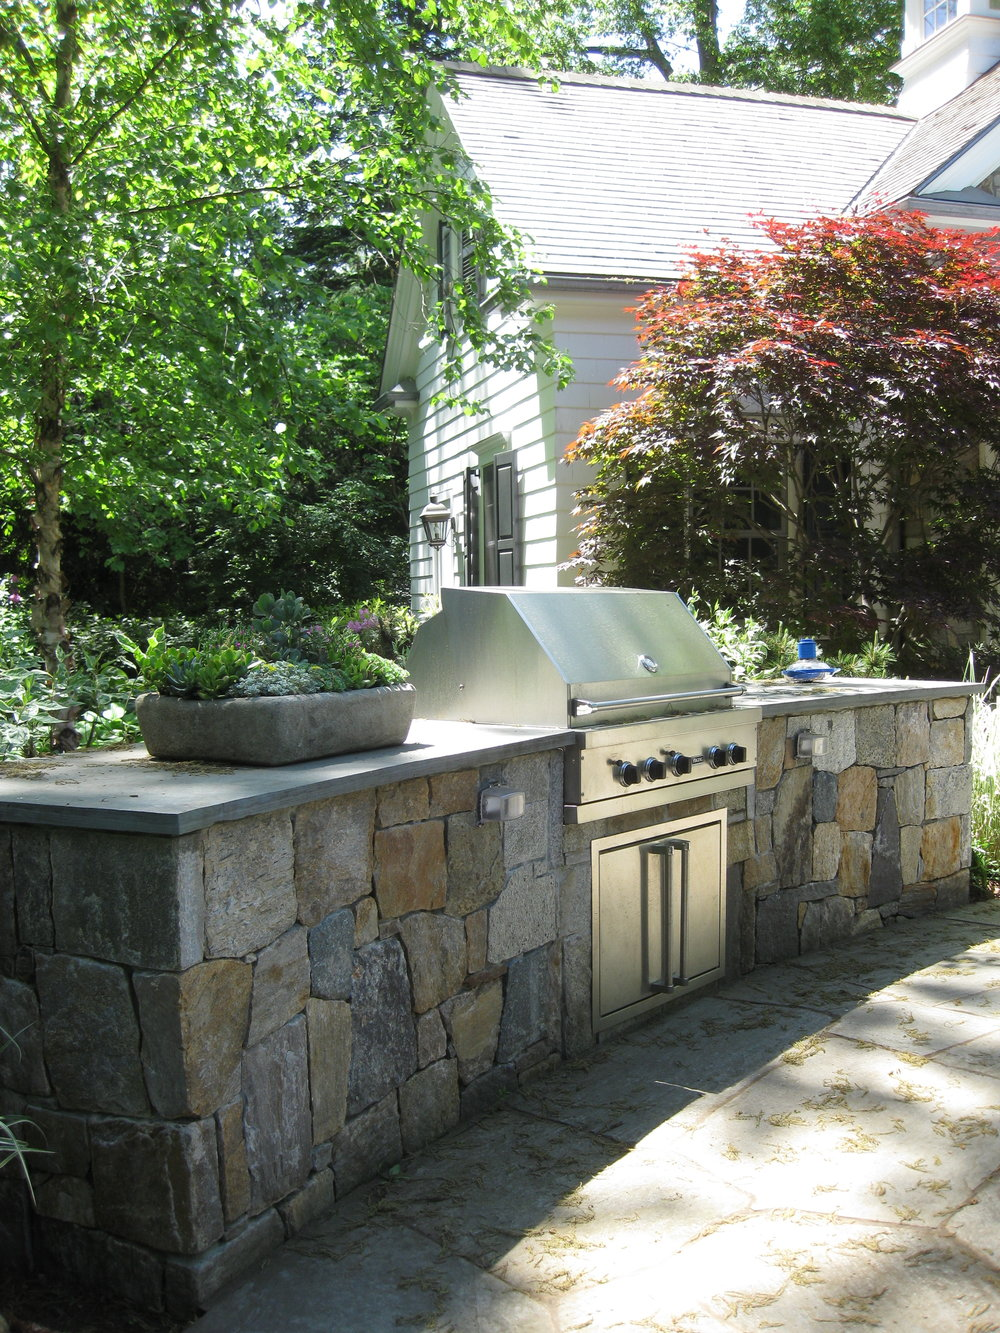 Get Your Grill On! -